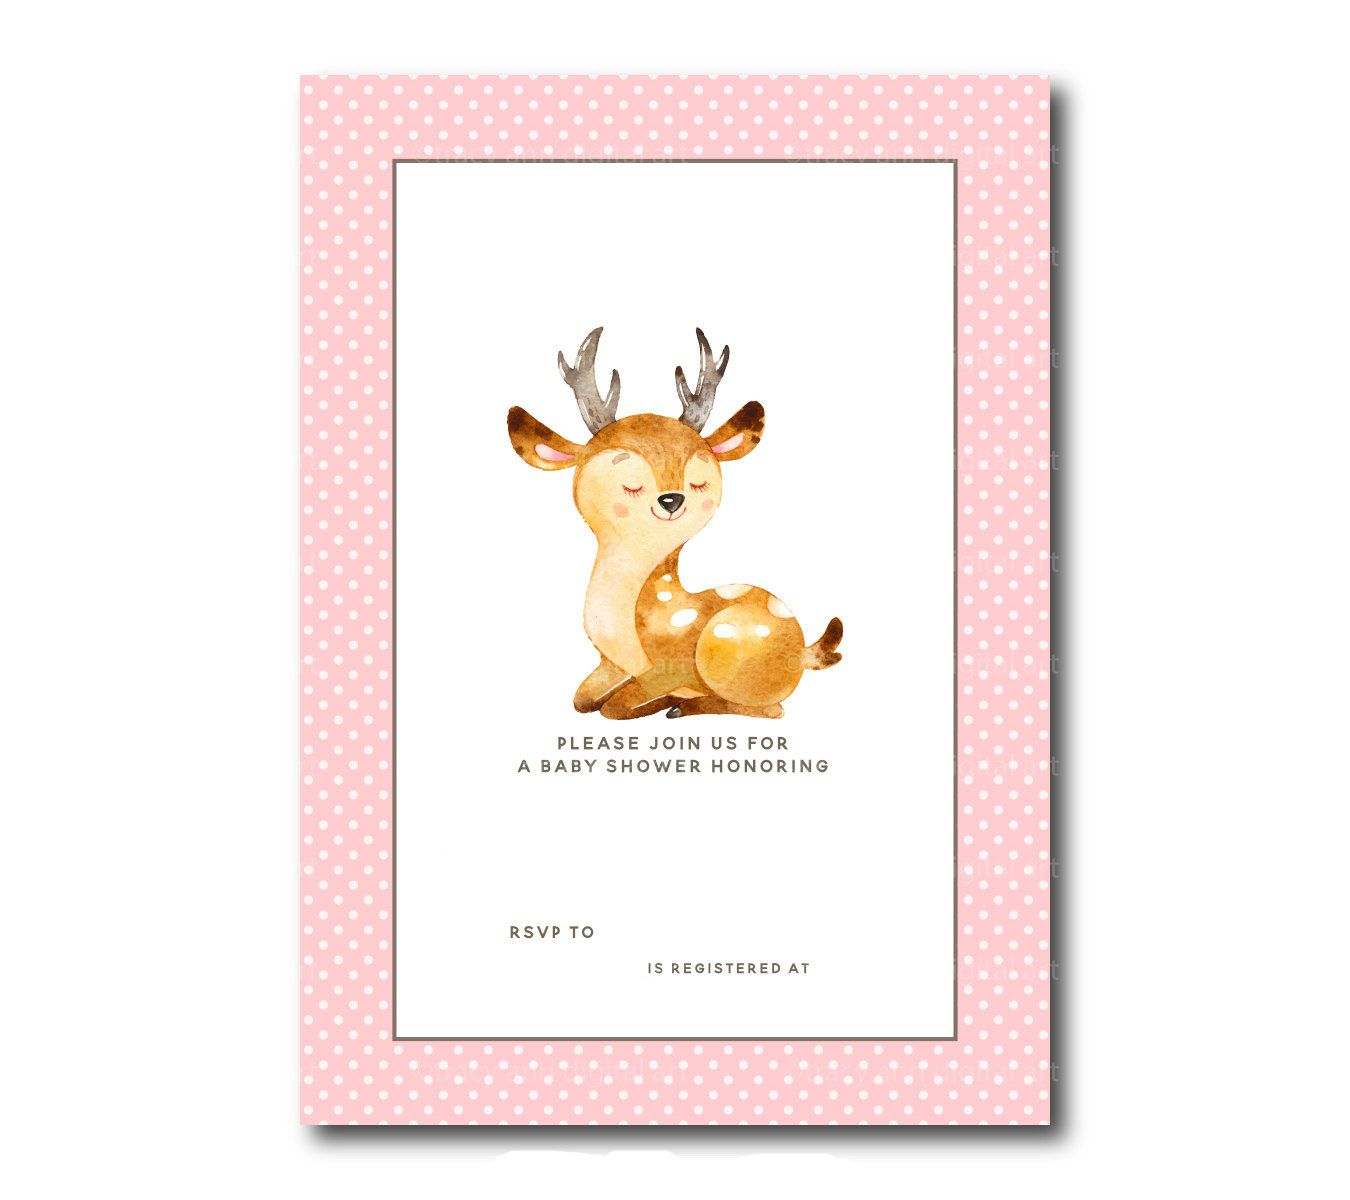 Download Free Template Free Printable Baby Deer Baby Shower Template Baby Shower Templates Deer Baby Showers Deer Birthday Invitations